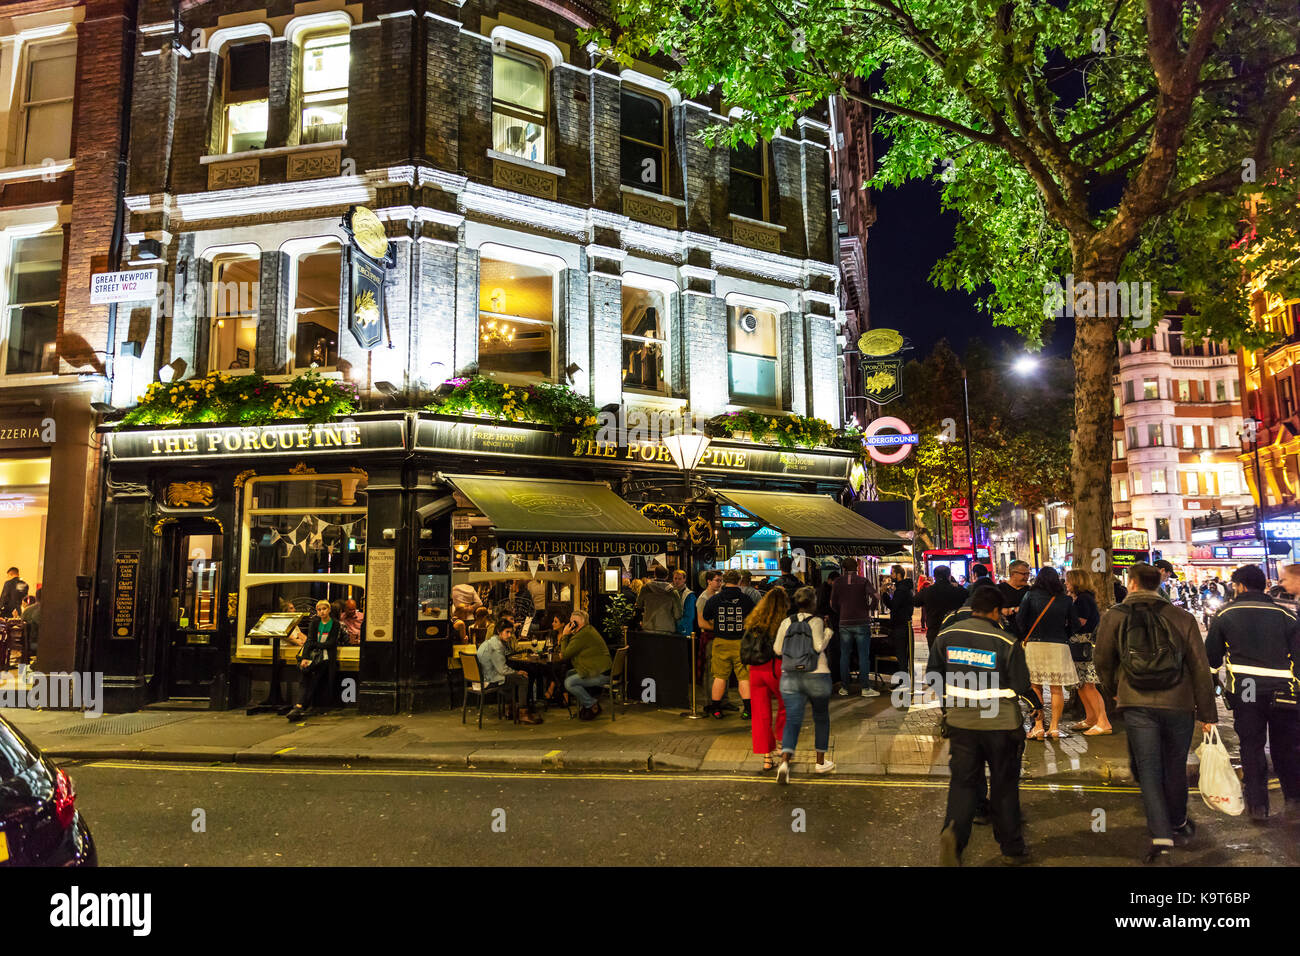 London nightlife, London pub, London bar, The Porcupine London bar, Nightlife London, London city nightlife, drinking - Stock Image